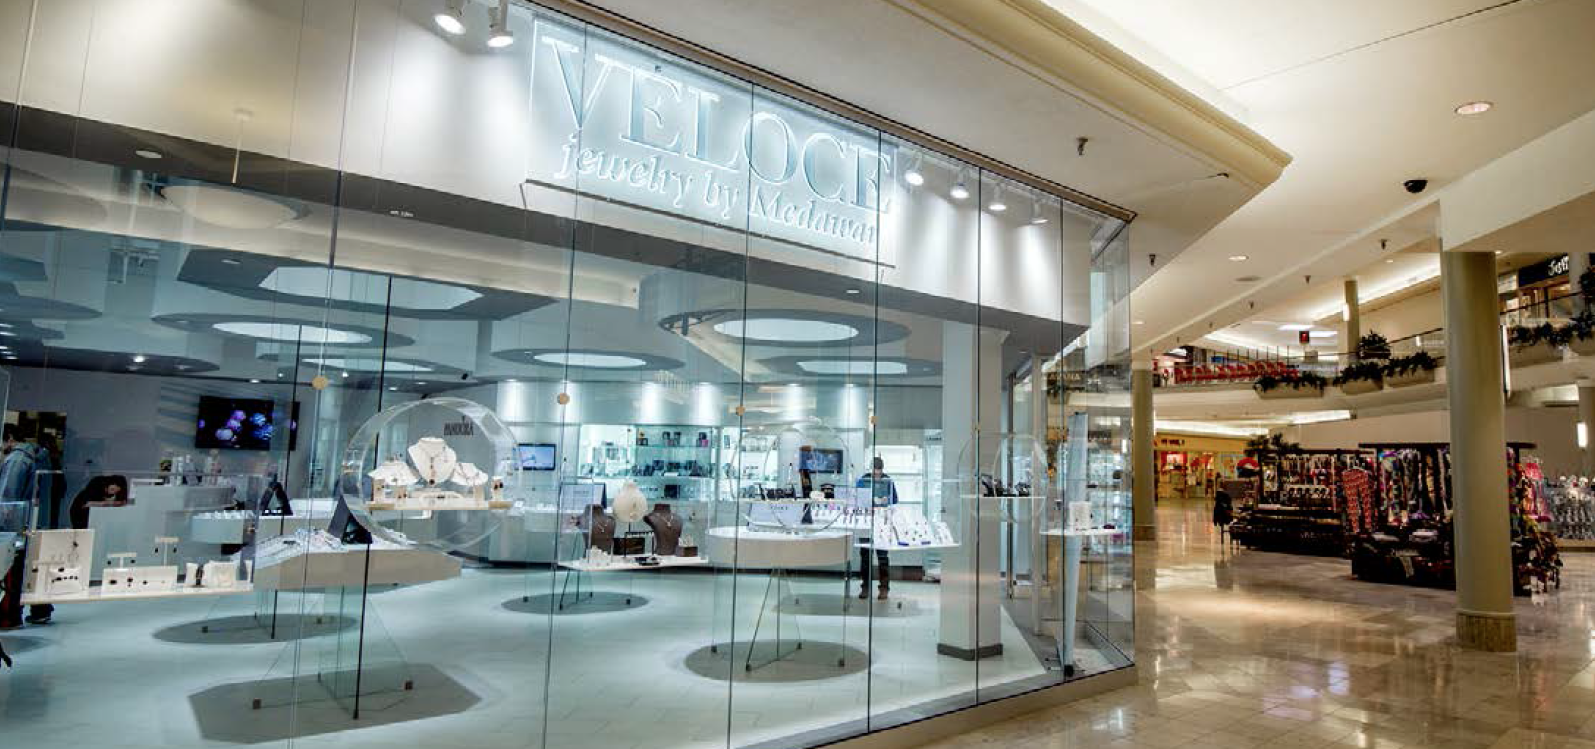 Small cool 1 veloce jewelry by medawar for Jewelry stores in usa